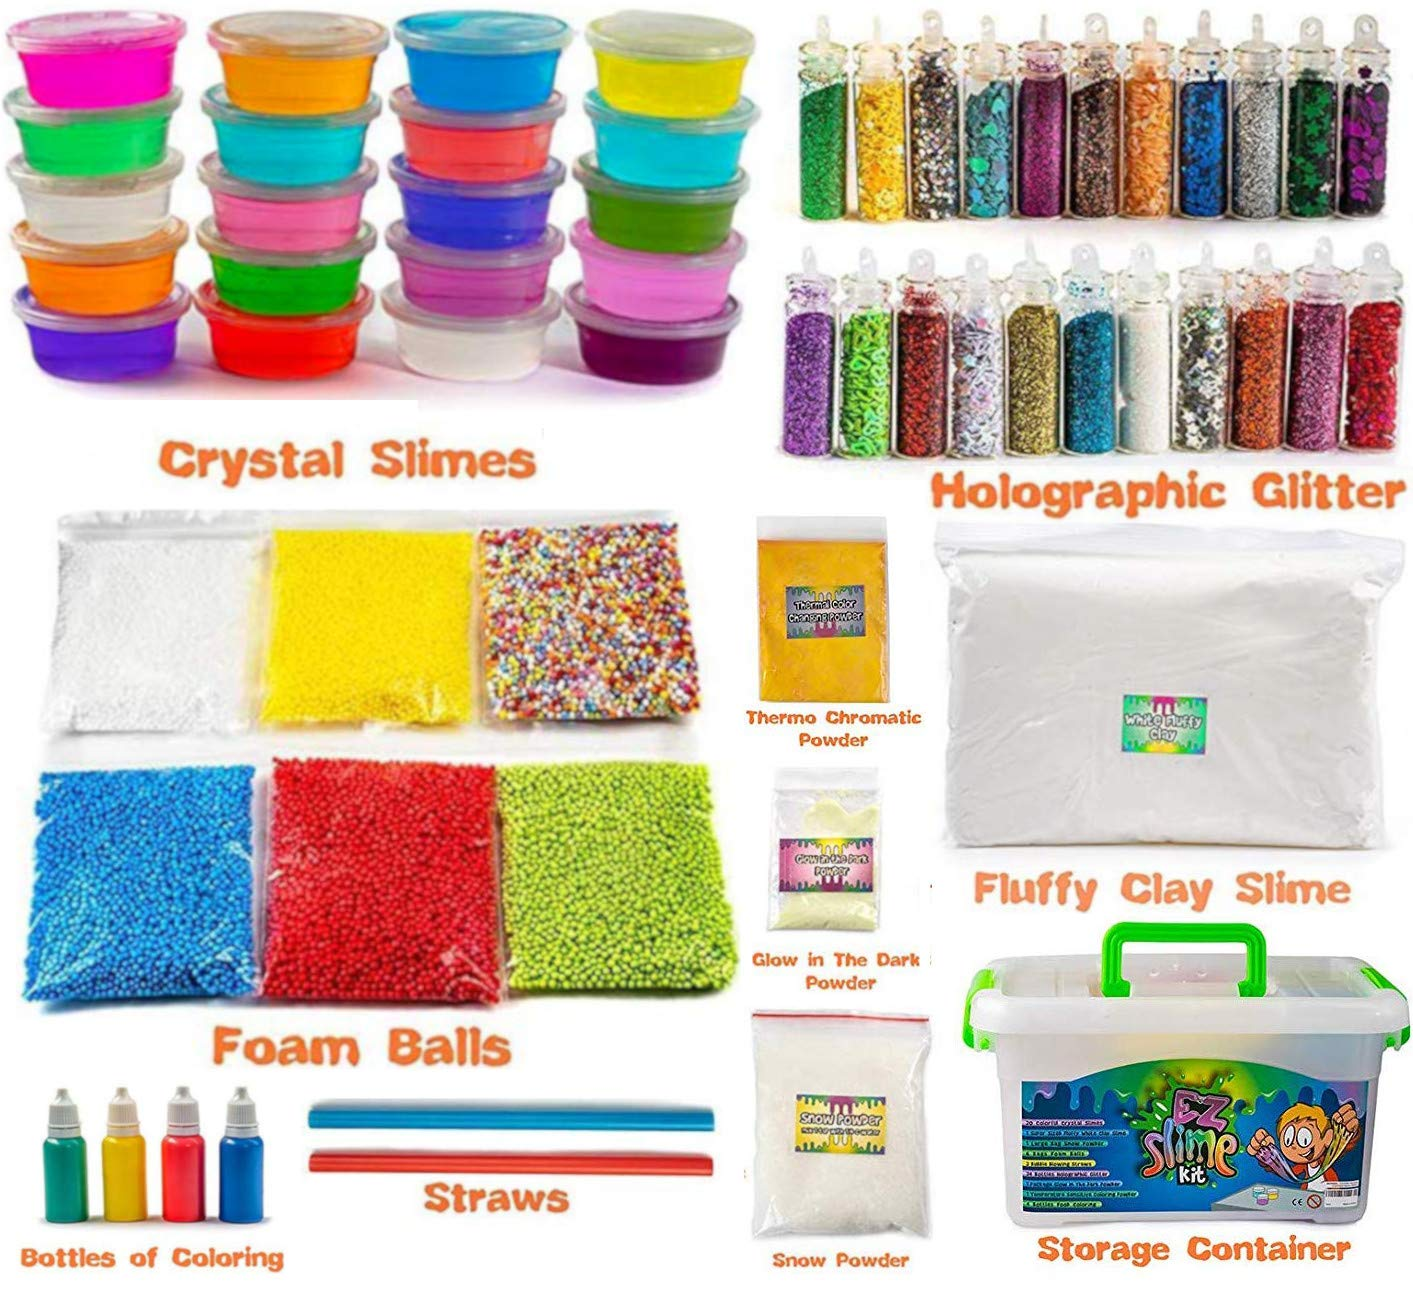 EZ Slime Kit- Boys Girls Everyone. Crystal Slime, Fluffy Clay Slime, Fake Snow, Glow Powder, Thermal Powder, Foam Beads, Glitter, Plus More. 60 Piece Kit. Over 3 Pounds by EZ Slime Kit (Image #4)